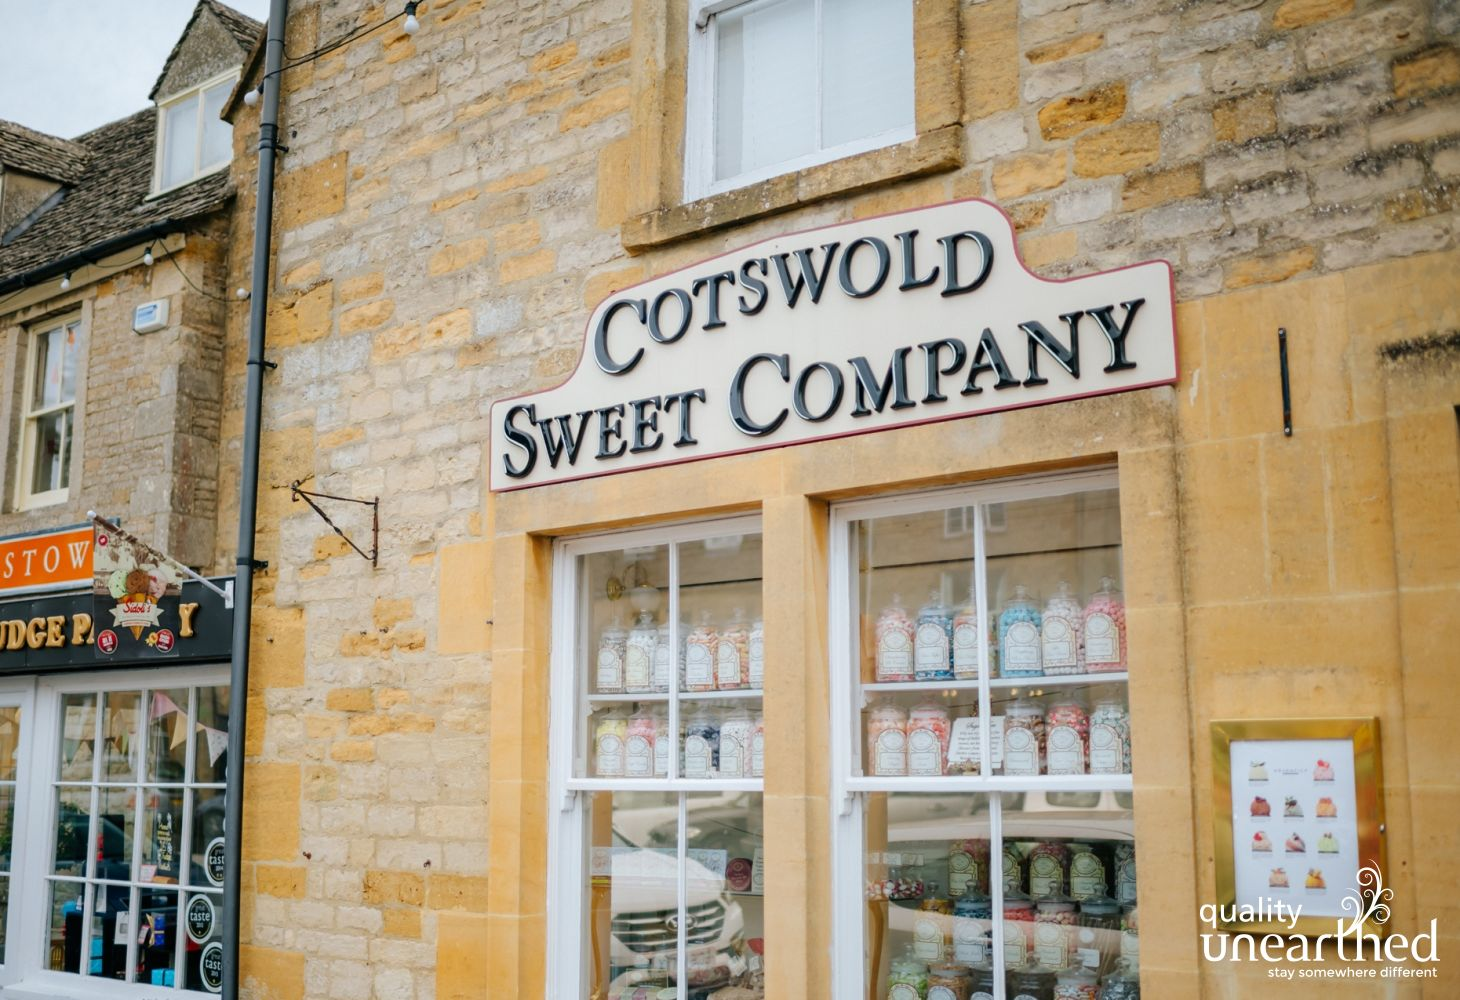 This is a photo of a traditional sweet shop, found in the popular Cotswold town of Stow On The Wold